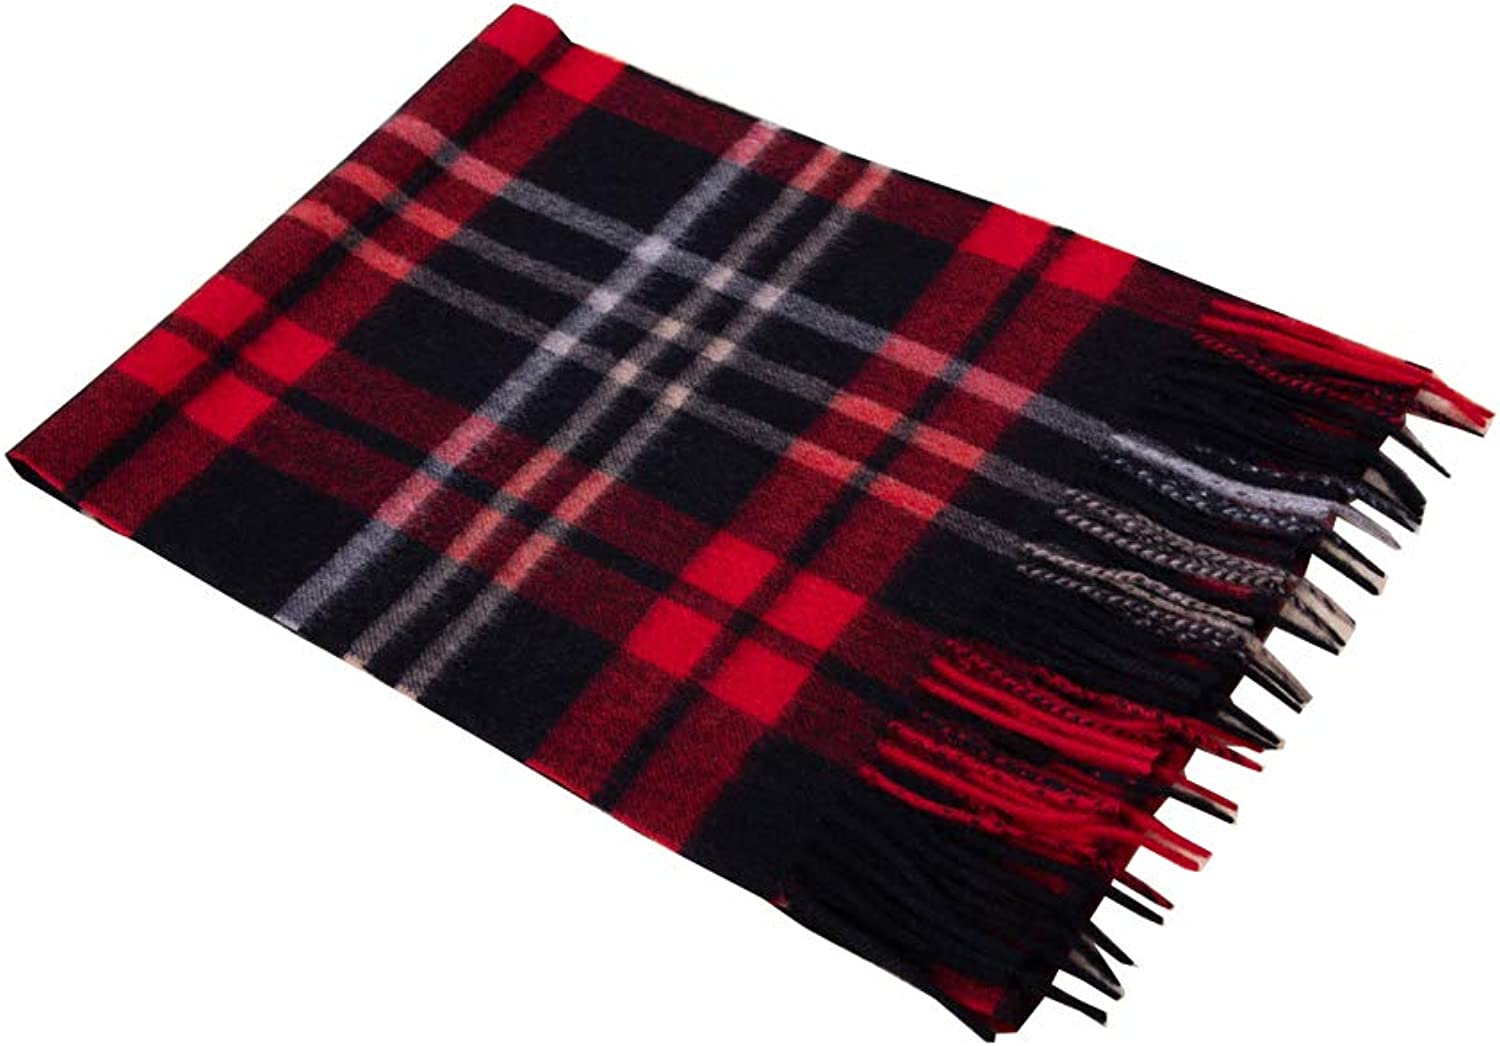 Cashmere Soft Tartan Shawl Wraps Large Winter Pashmina Stole Scarf With Gift Box